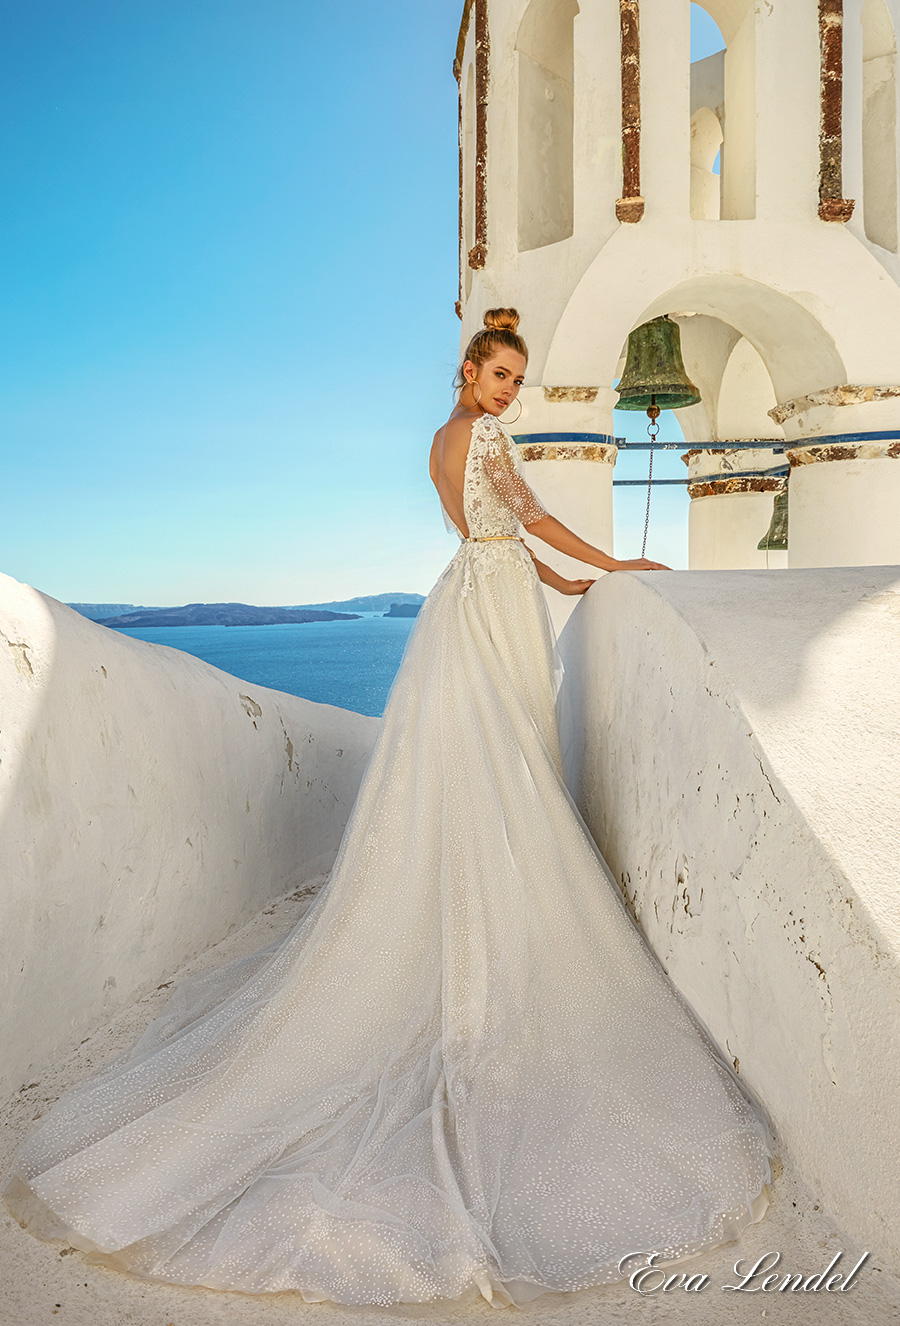 eva lendel 2017 bridal half cape sleeves illusion bateau sweetheart neckline heavily embellished bodice romantic a line wedding dress open v low back chapel train (white) bv